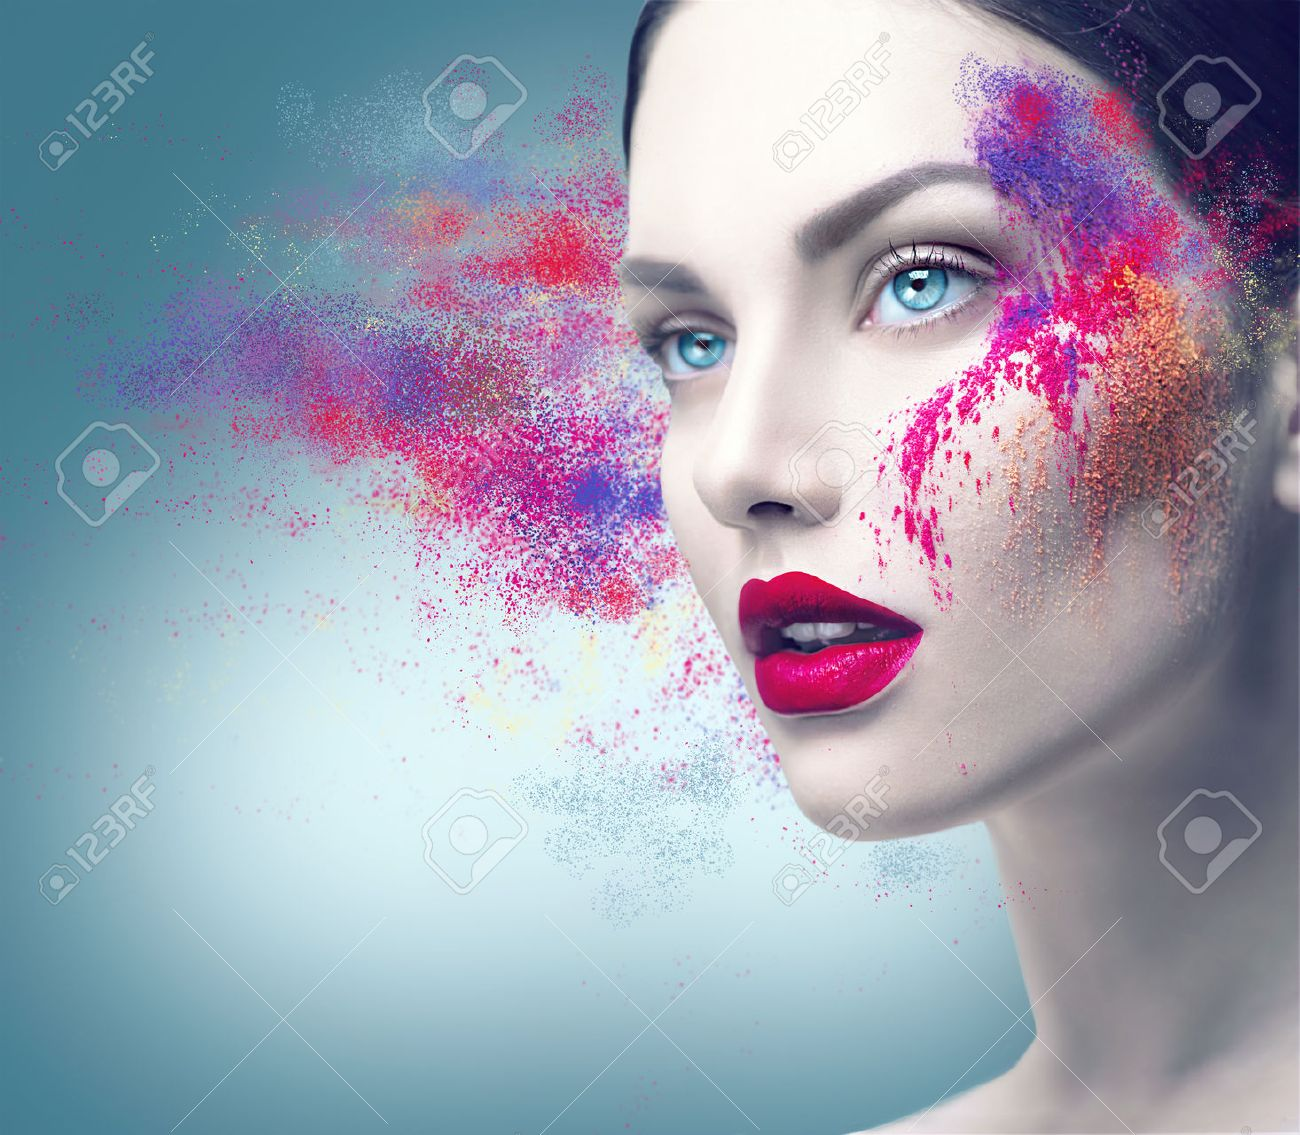 Fashion model girl portrait with colorful powder makeup - 63997788